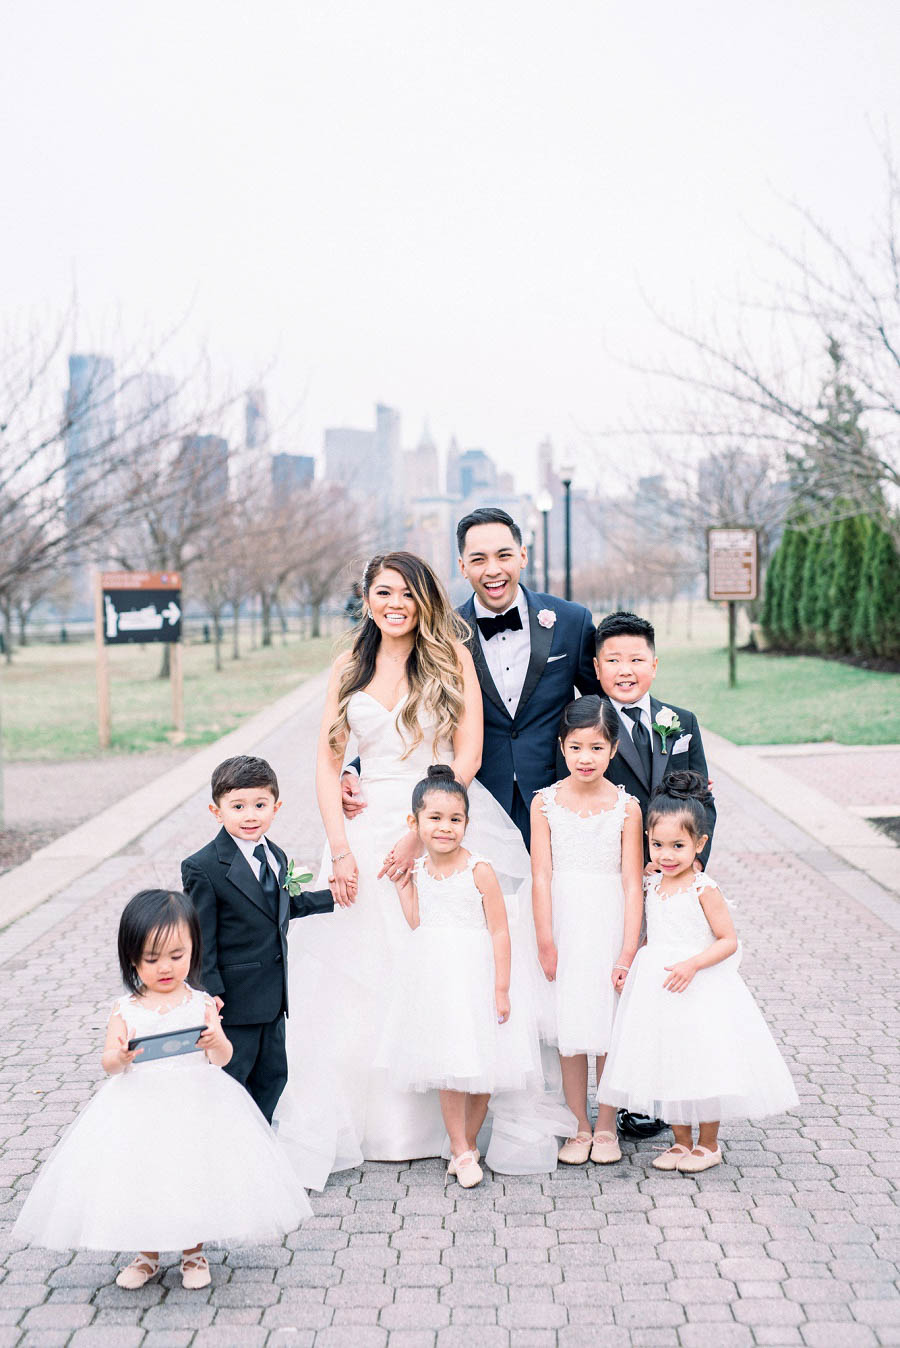 Liberty House Wedding - Jersey City - NJ Wedding Photographer - Myra Roman Photography-50.jpg